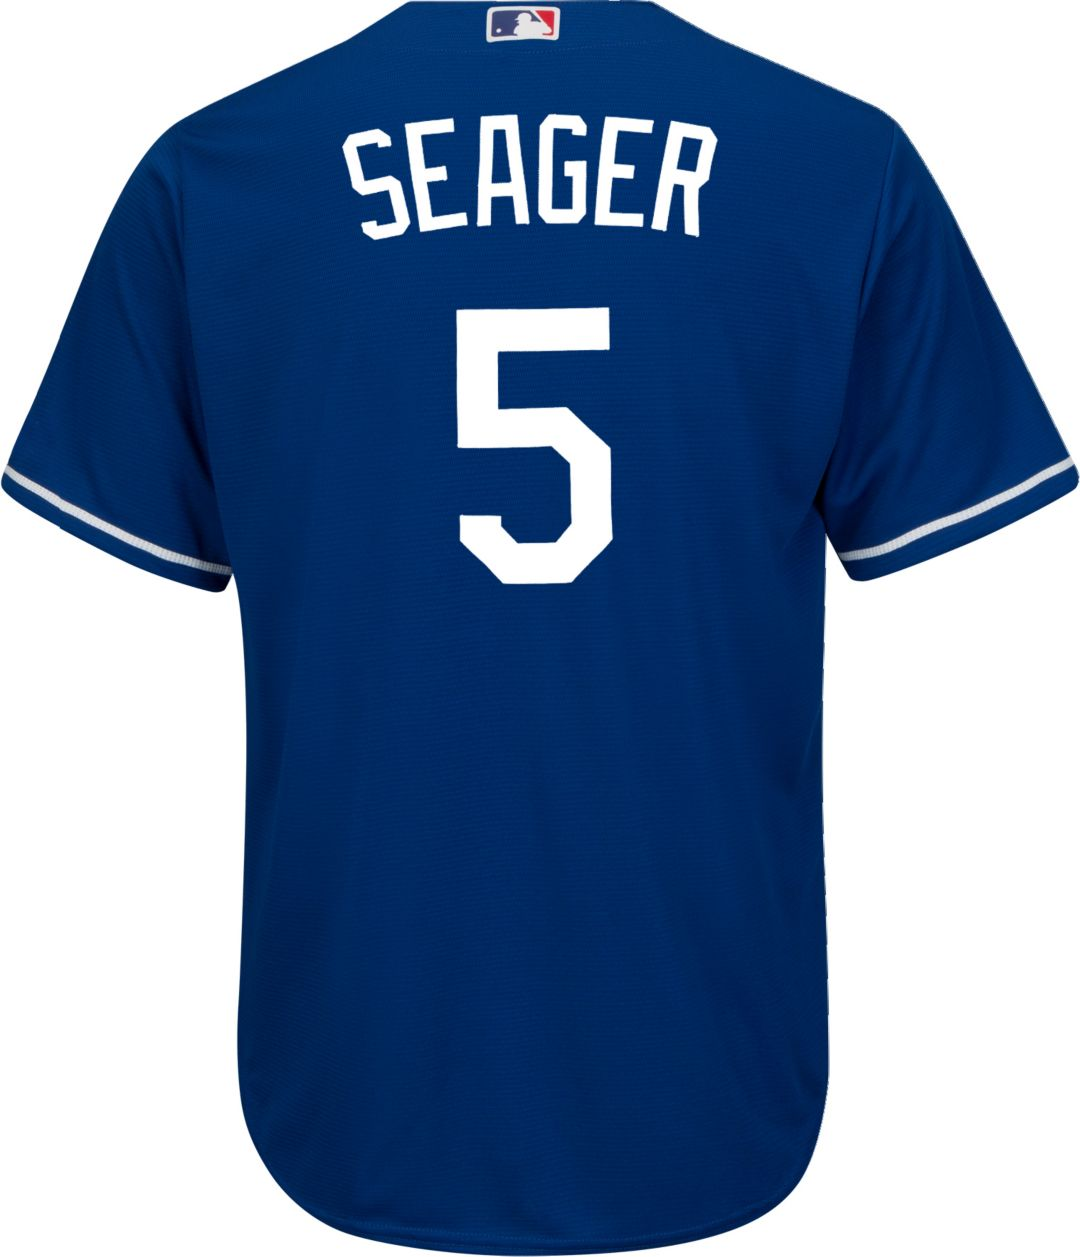 best loved 4a5d1 64a2c Youth Replica Los Angeles Dodgers Corey Seager #5 Alternate Royal Jersey